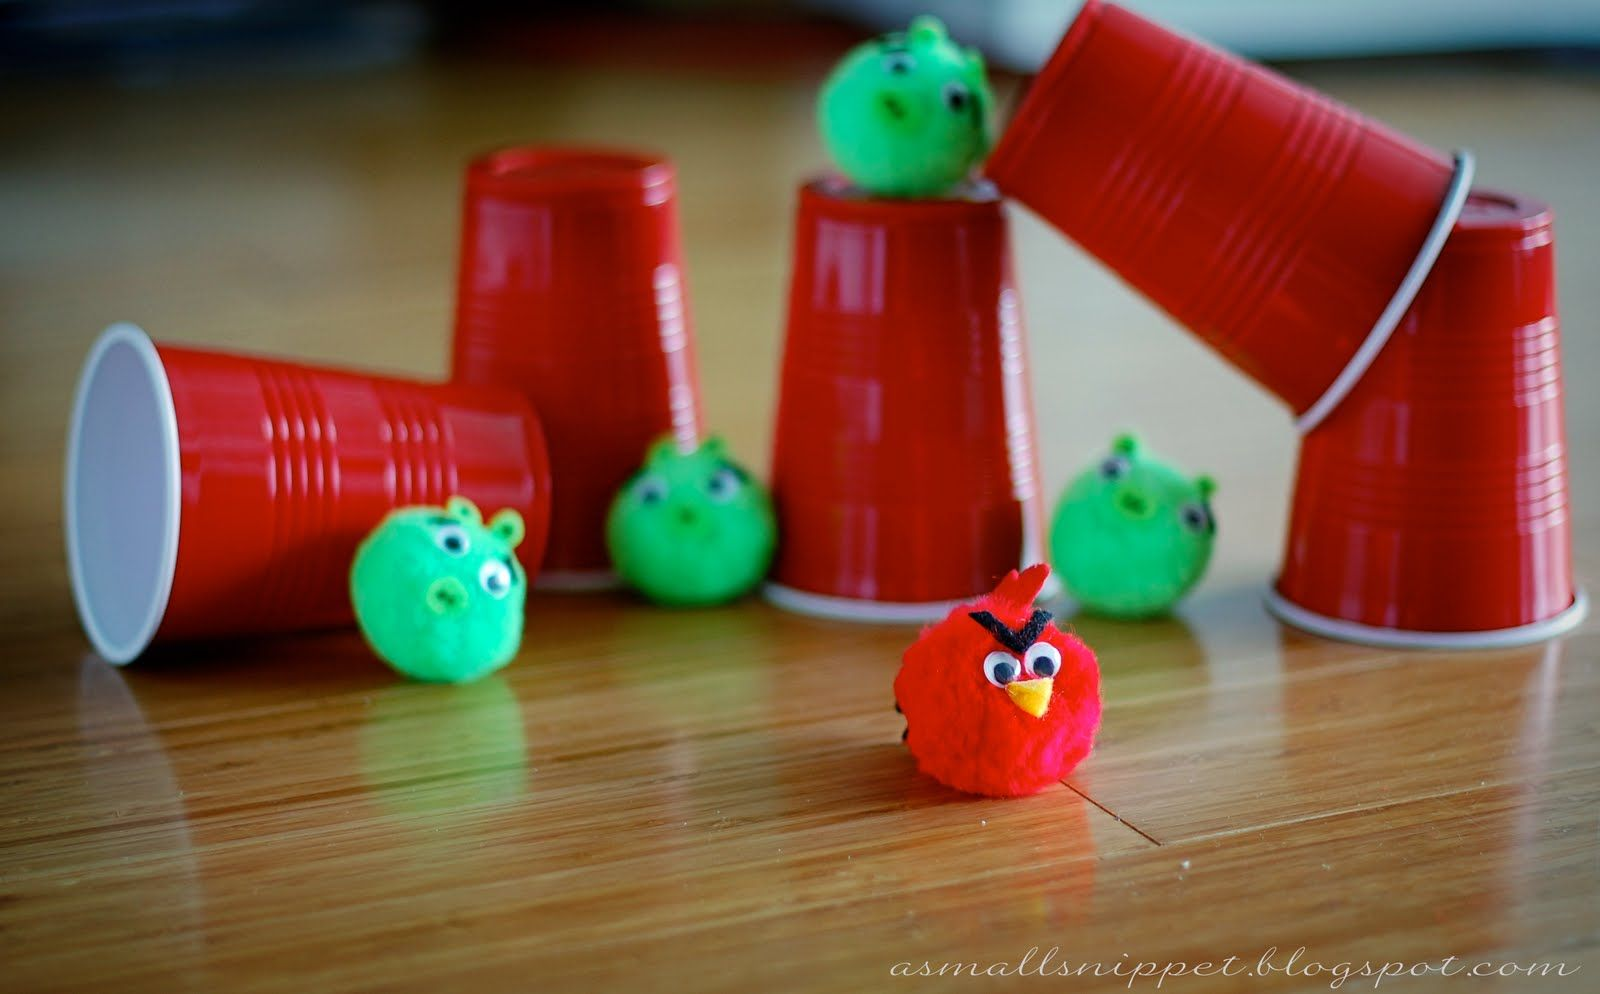 I want to make this for the after school program i work at